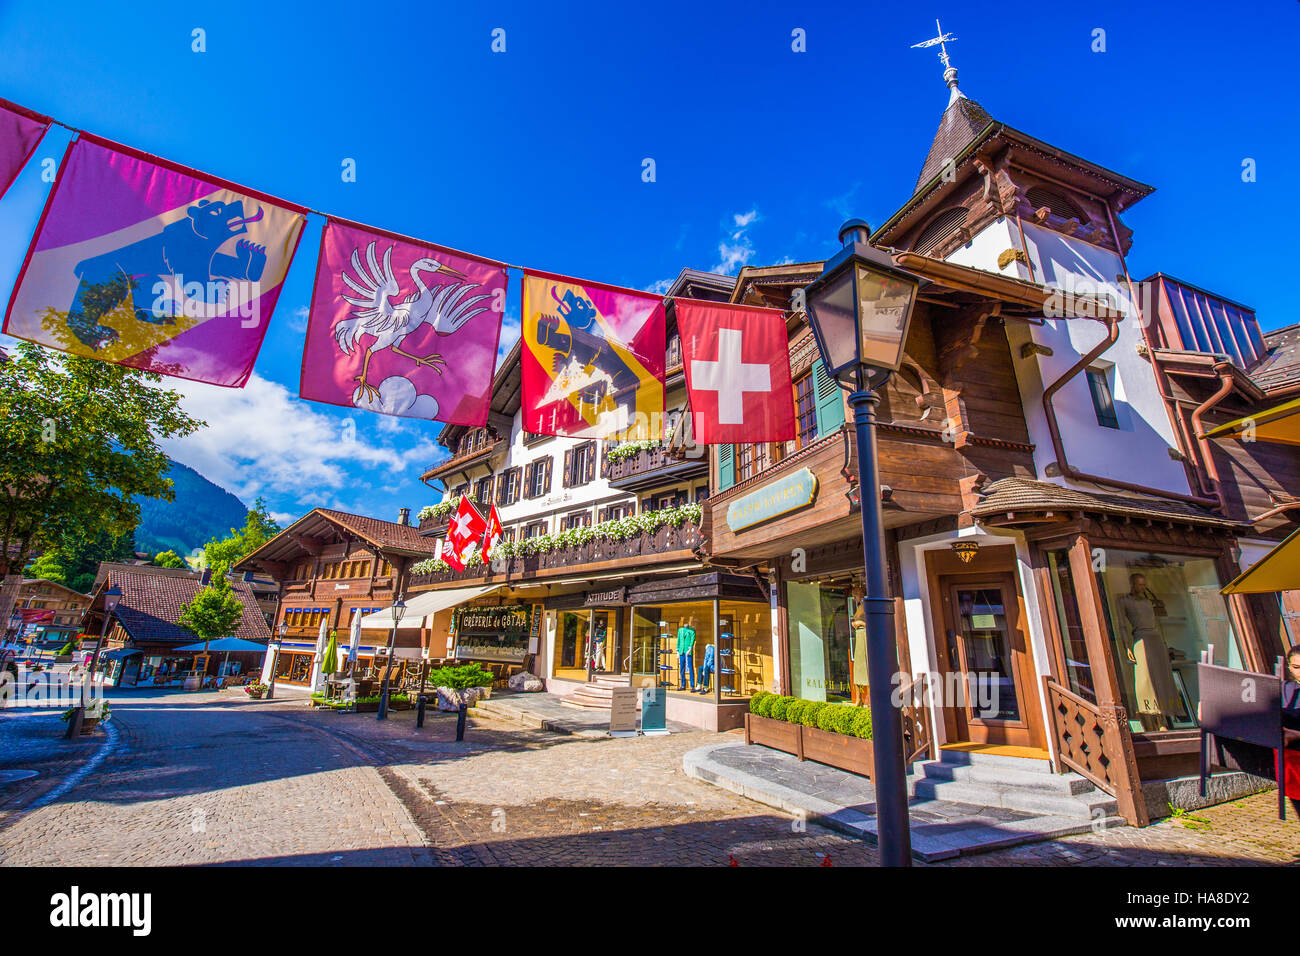 old city center of gstaad village - famous ski resort in swiss alps